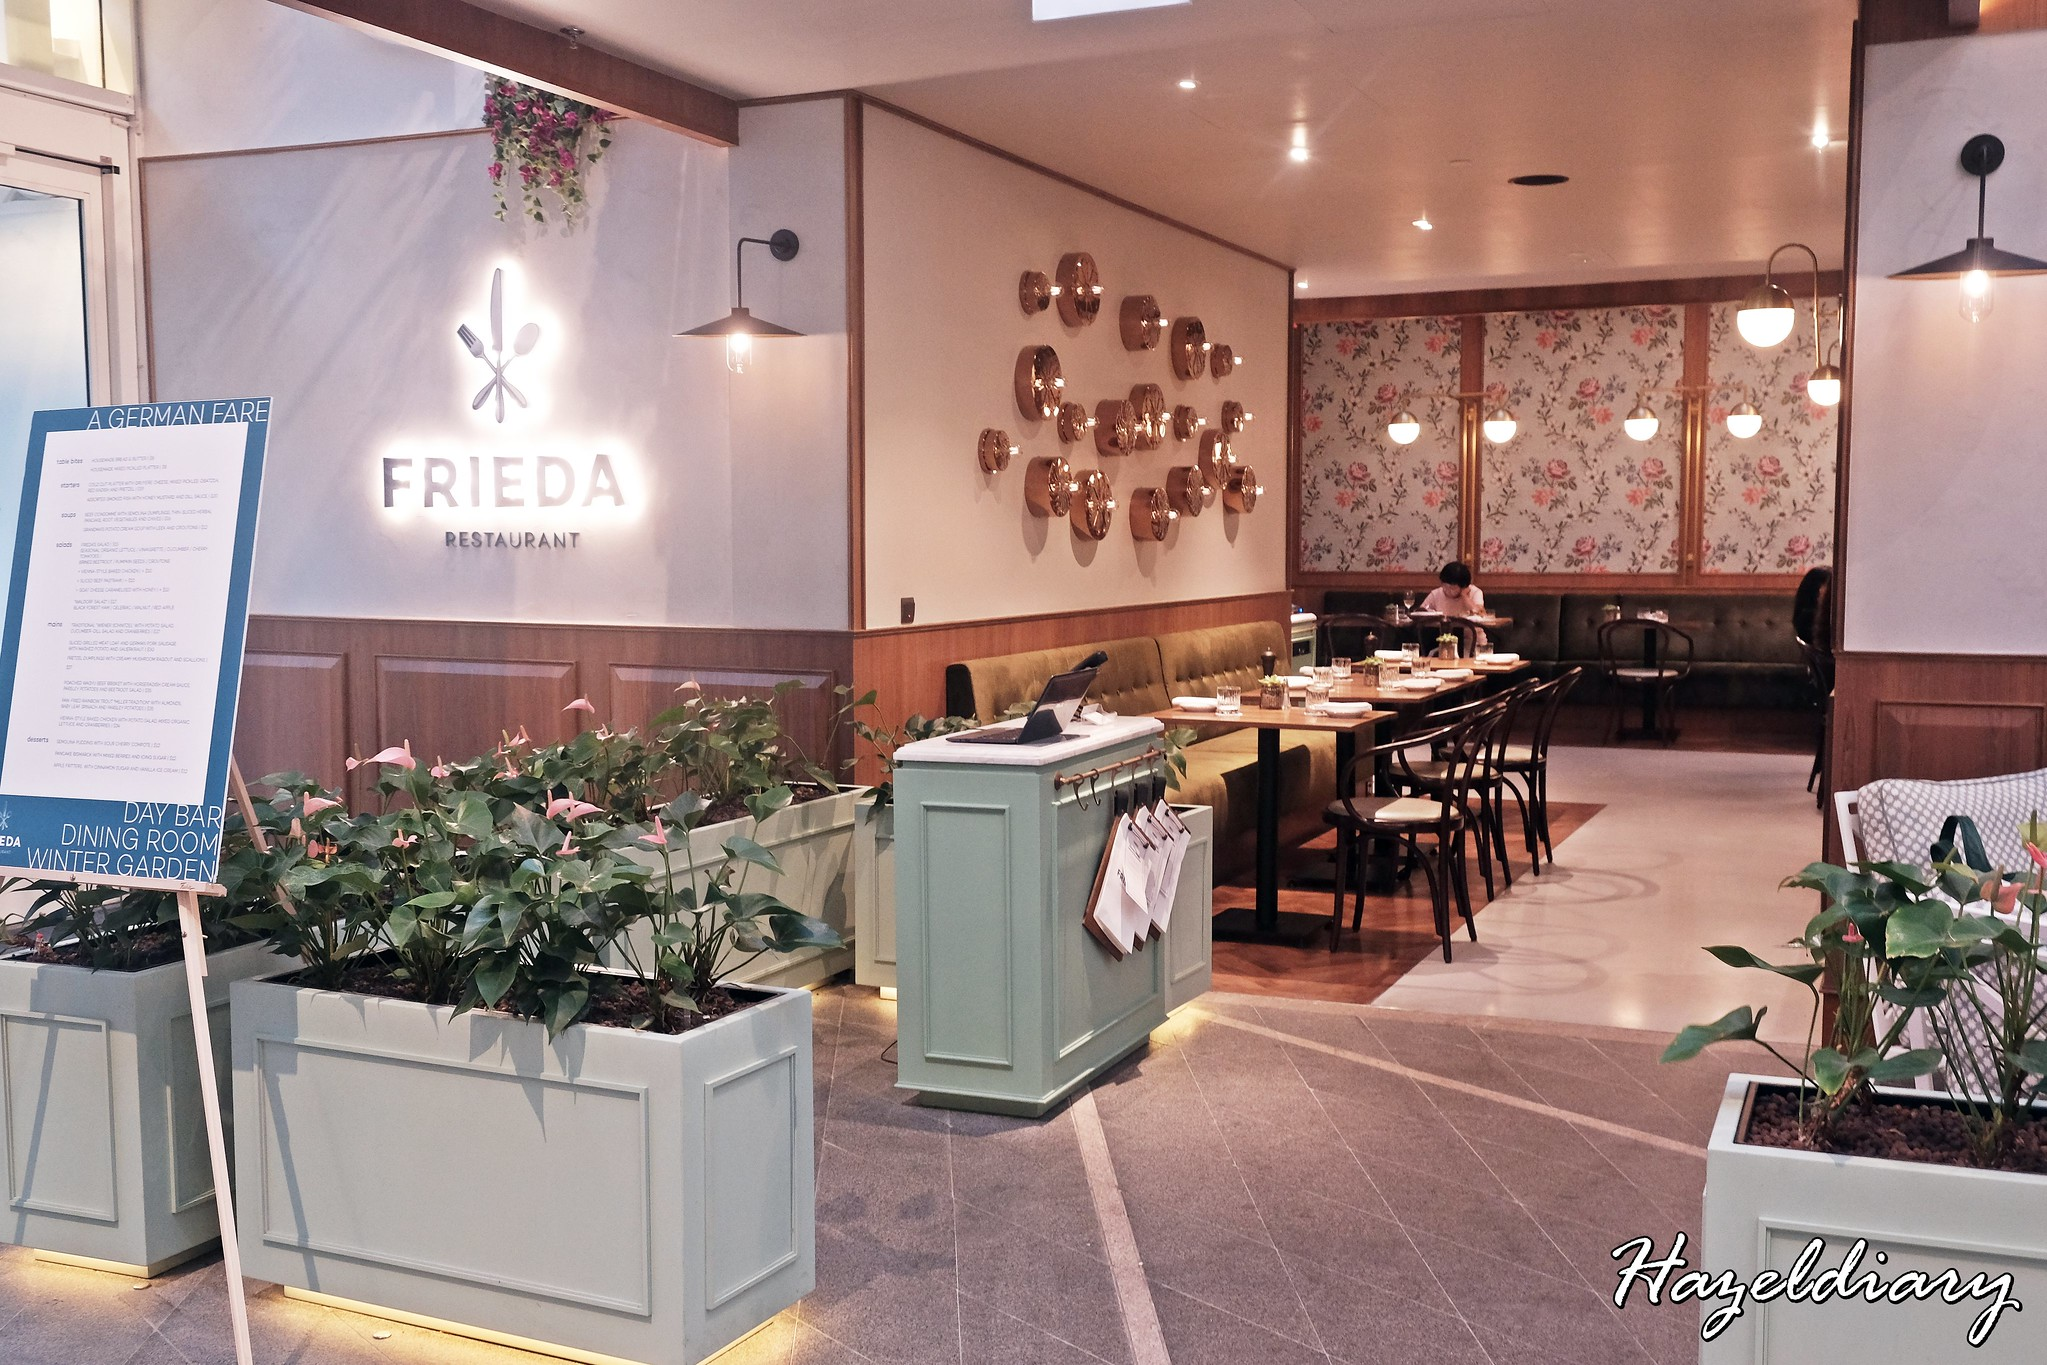 [SG EATS] Frieda Restaurant- German Restaurant At Arcade @ The Capitol Kempinski Singapore